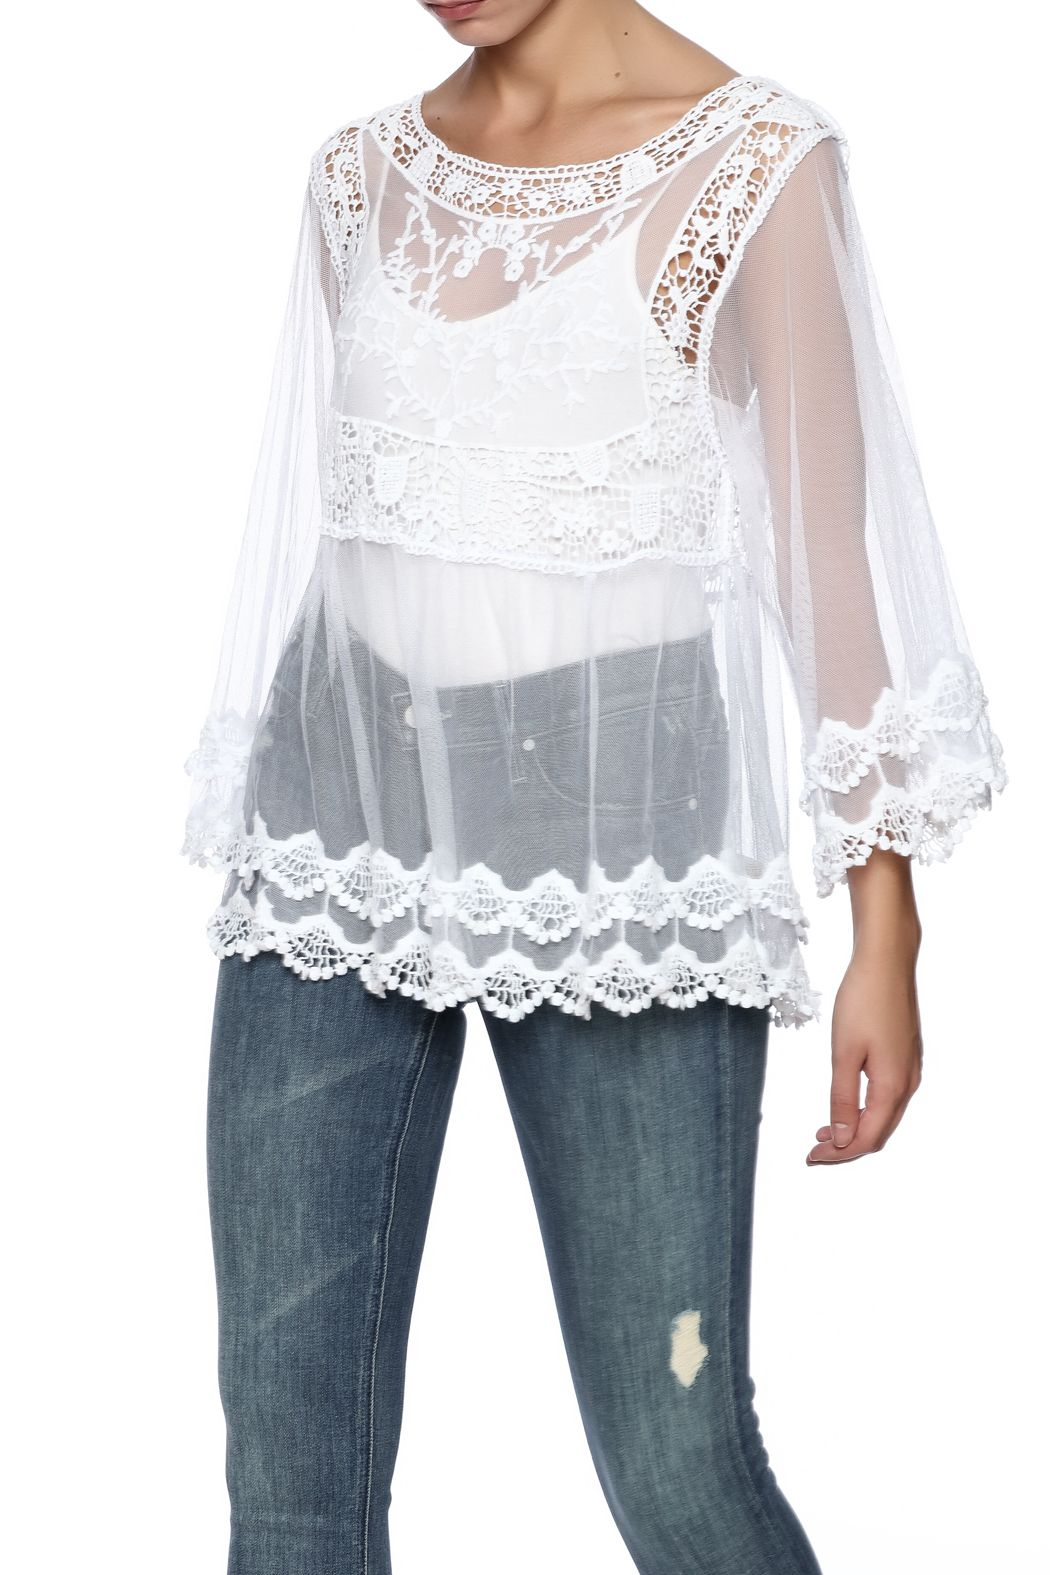 63c36a2c9b3 Sheer lace blouse with crochet detailing